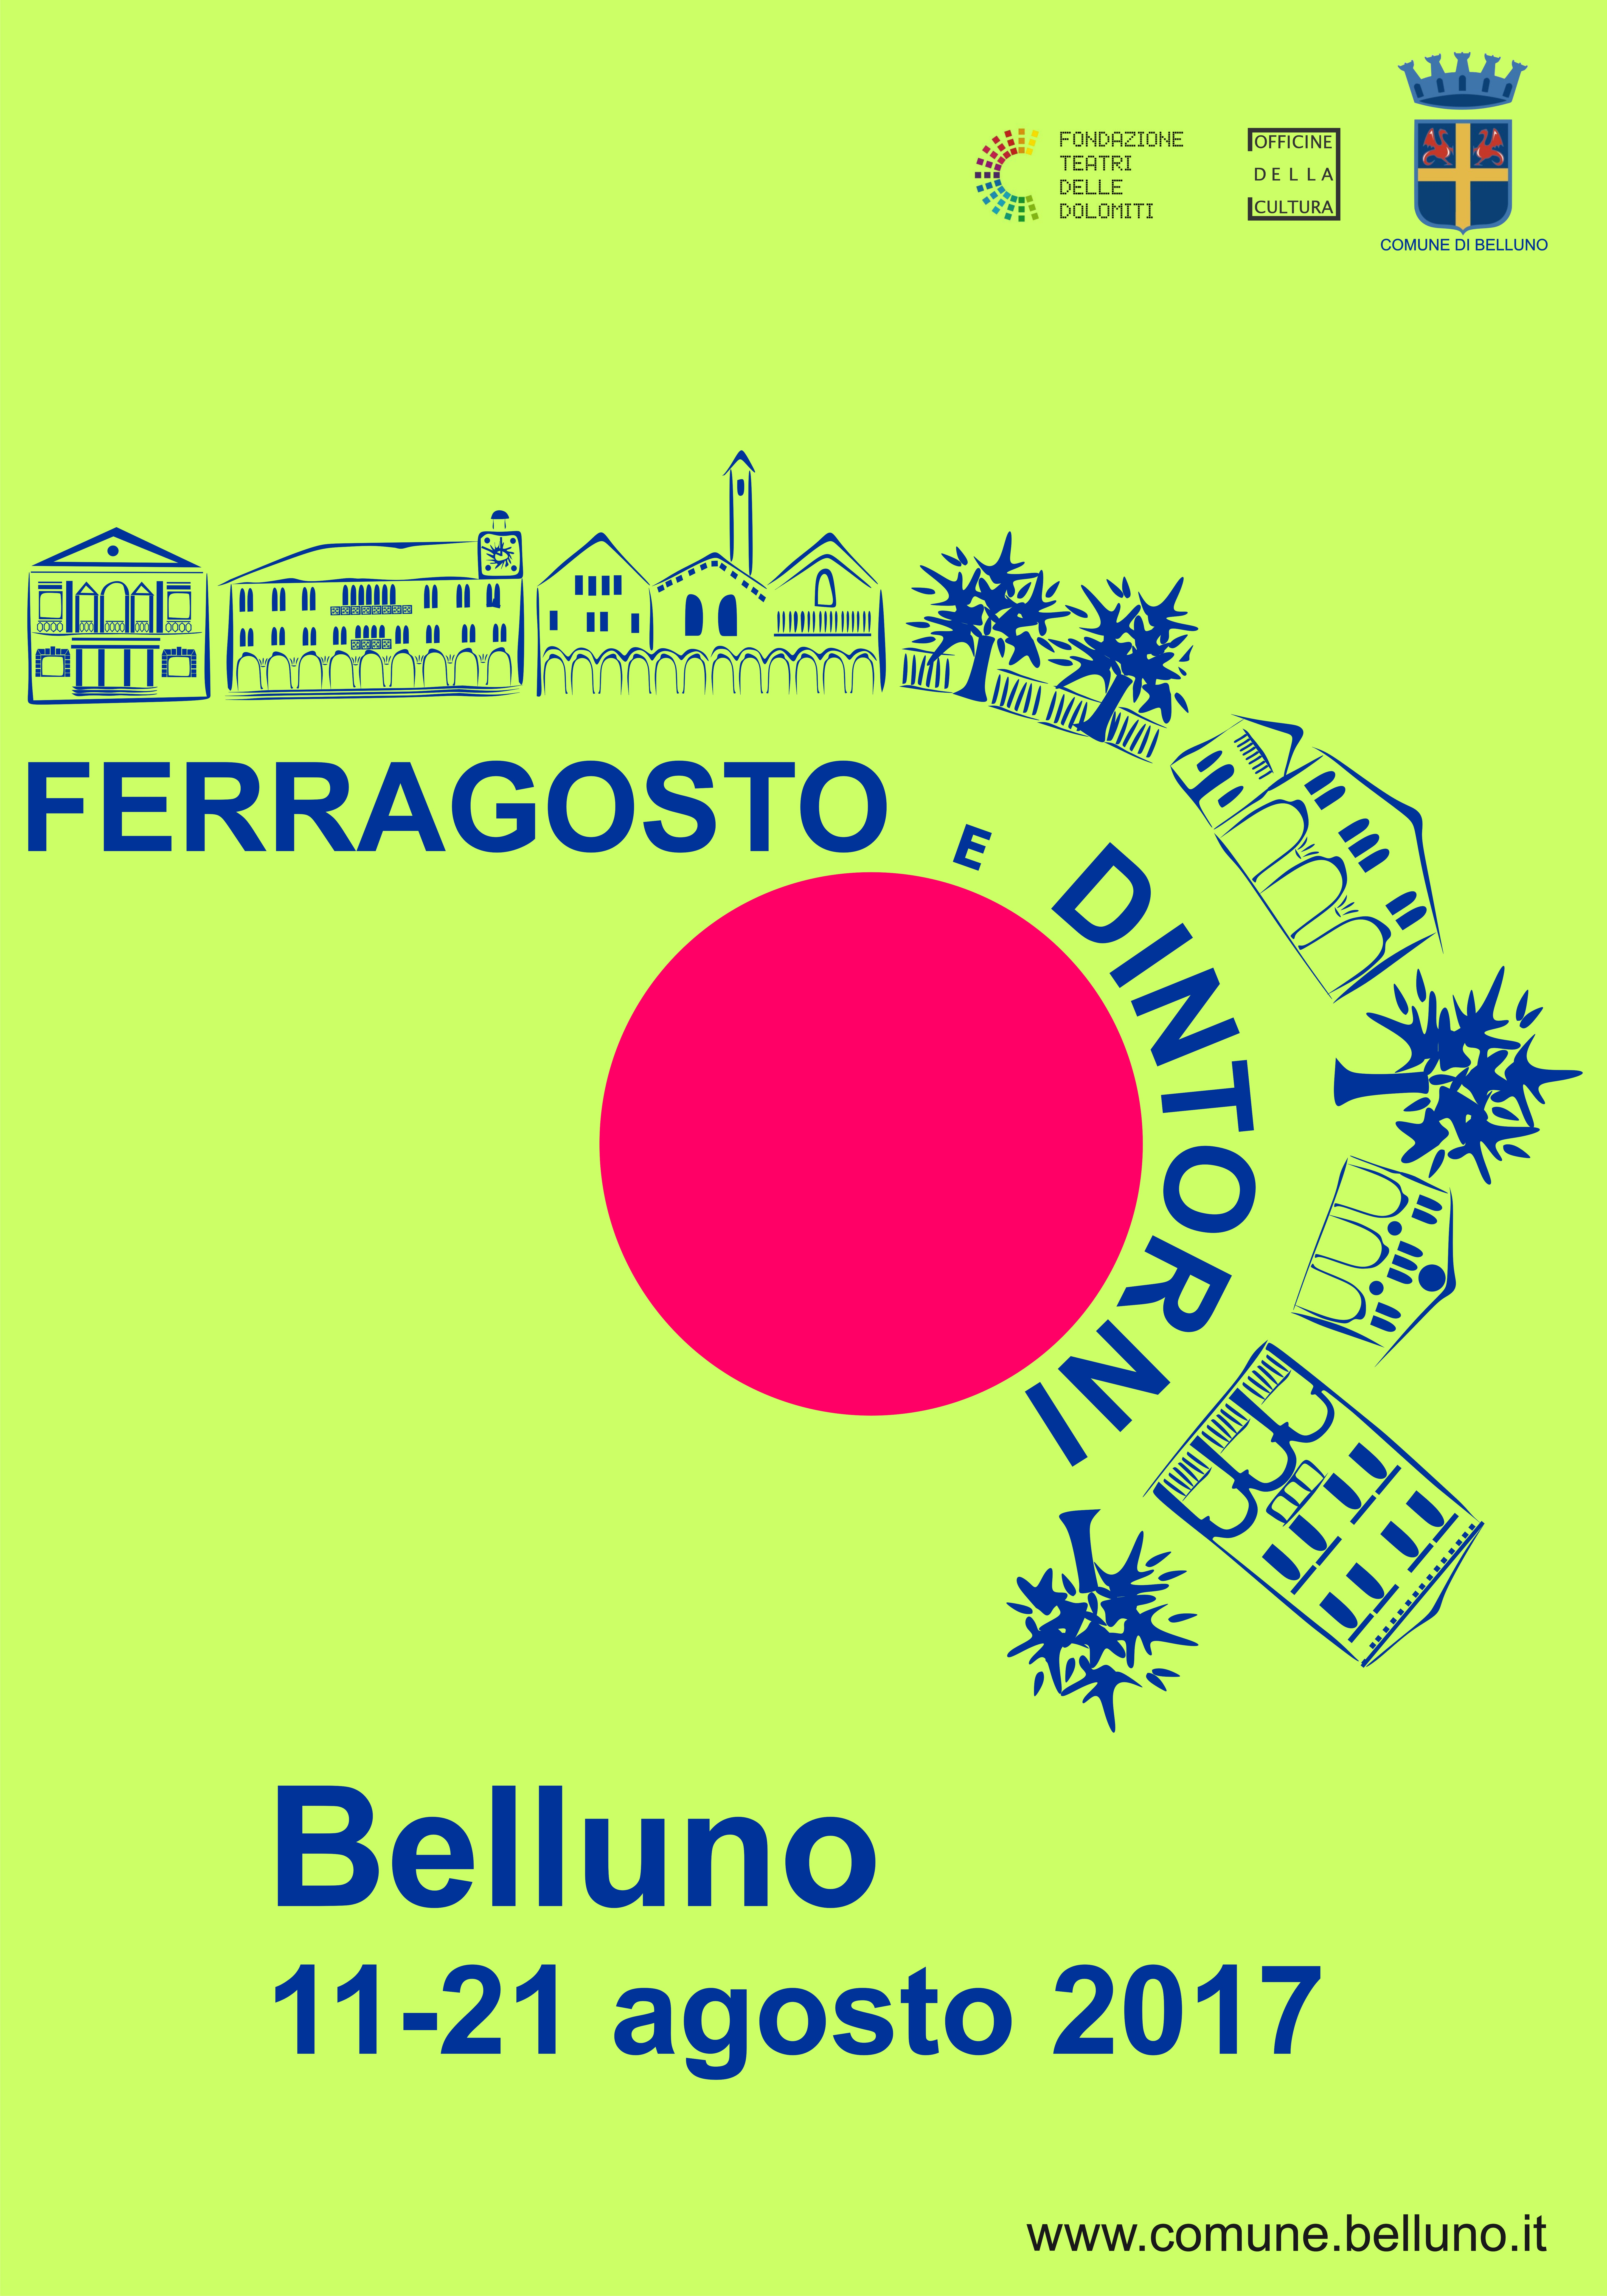 Ferragosto e dintorni 2017 - City tour in English and French